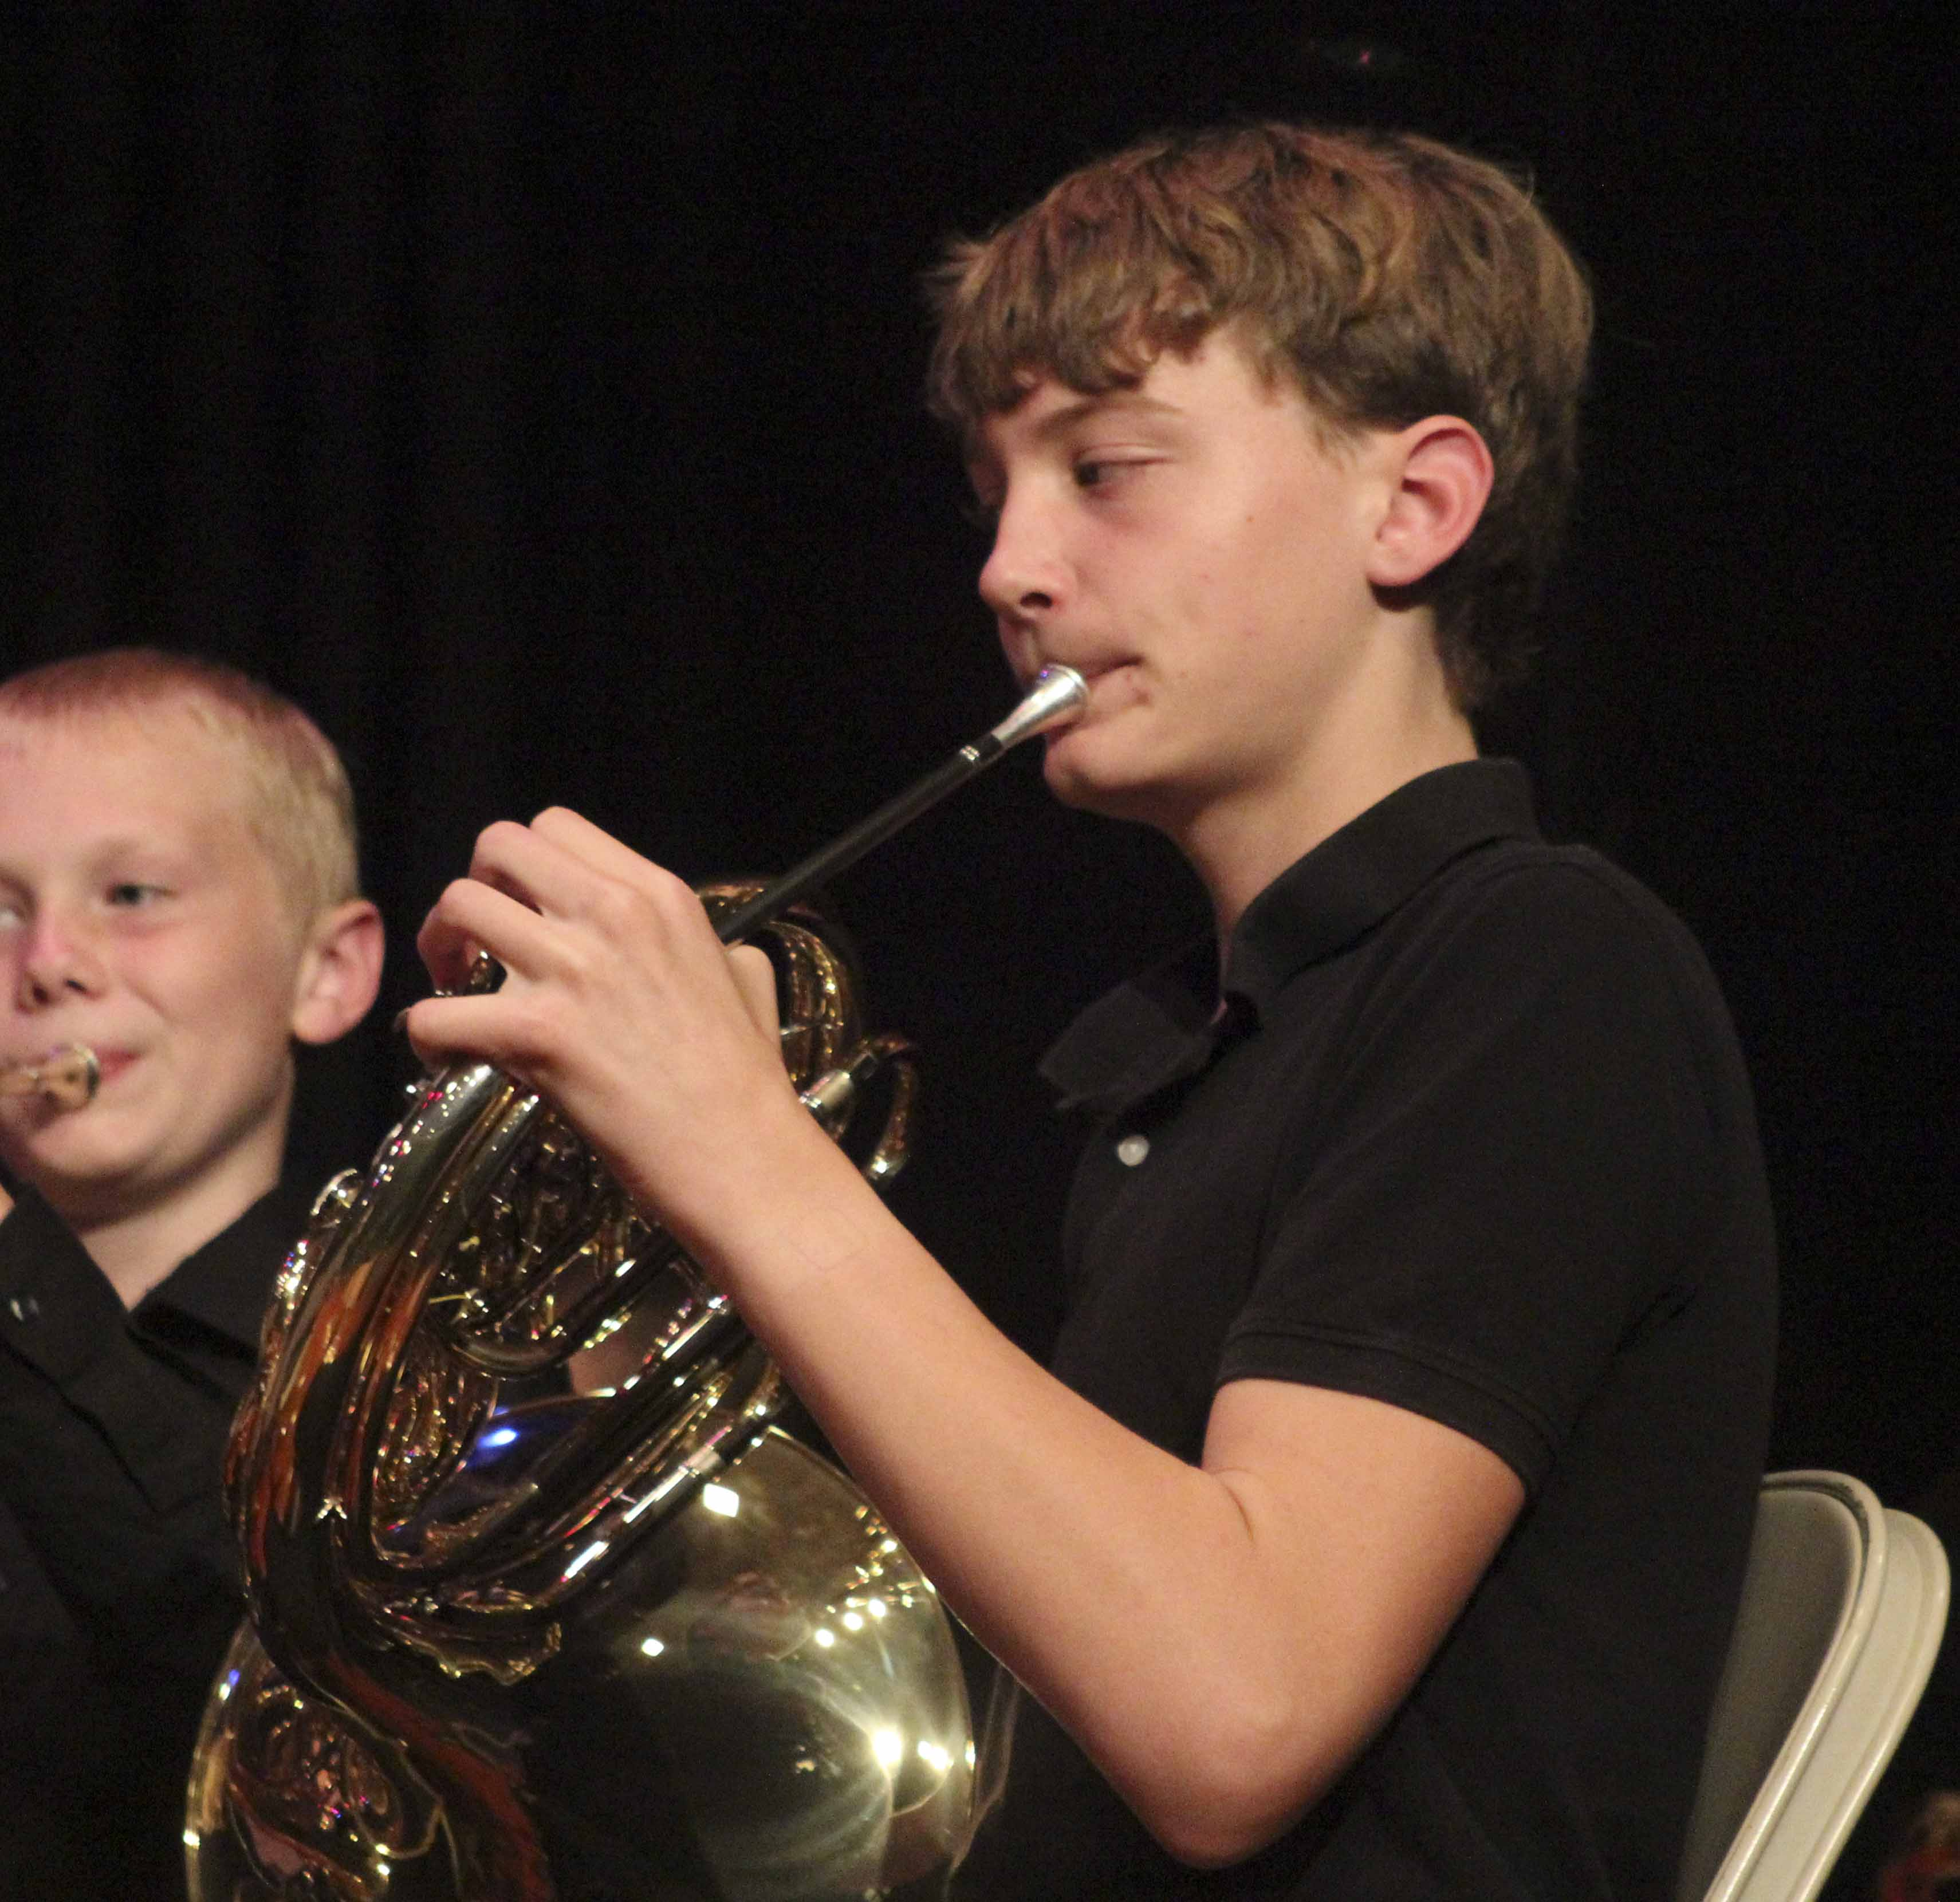 Sully Flynn (right) and Erlin Bell play French horn in the Oct. 26 middle school band concert. (Photo by Pete Temple)